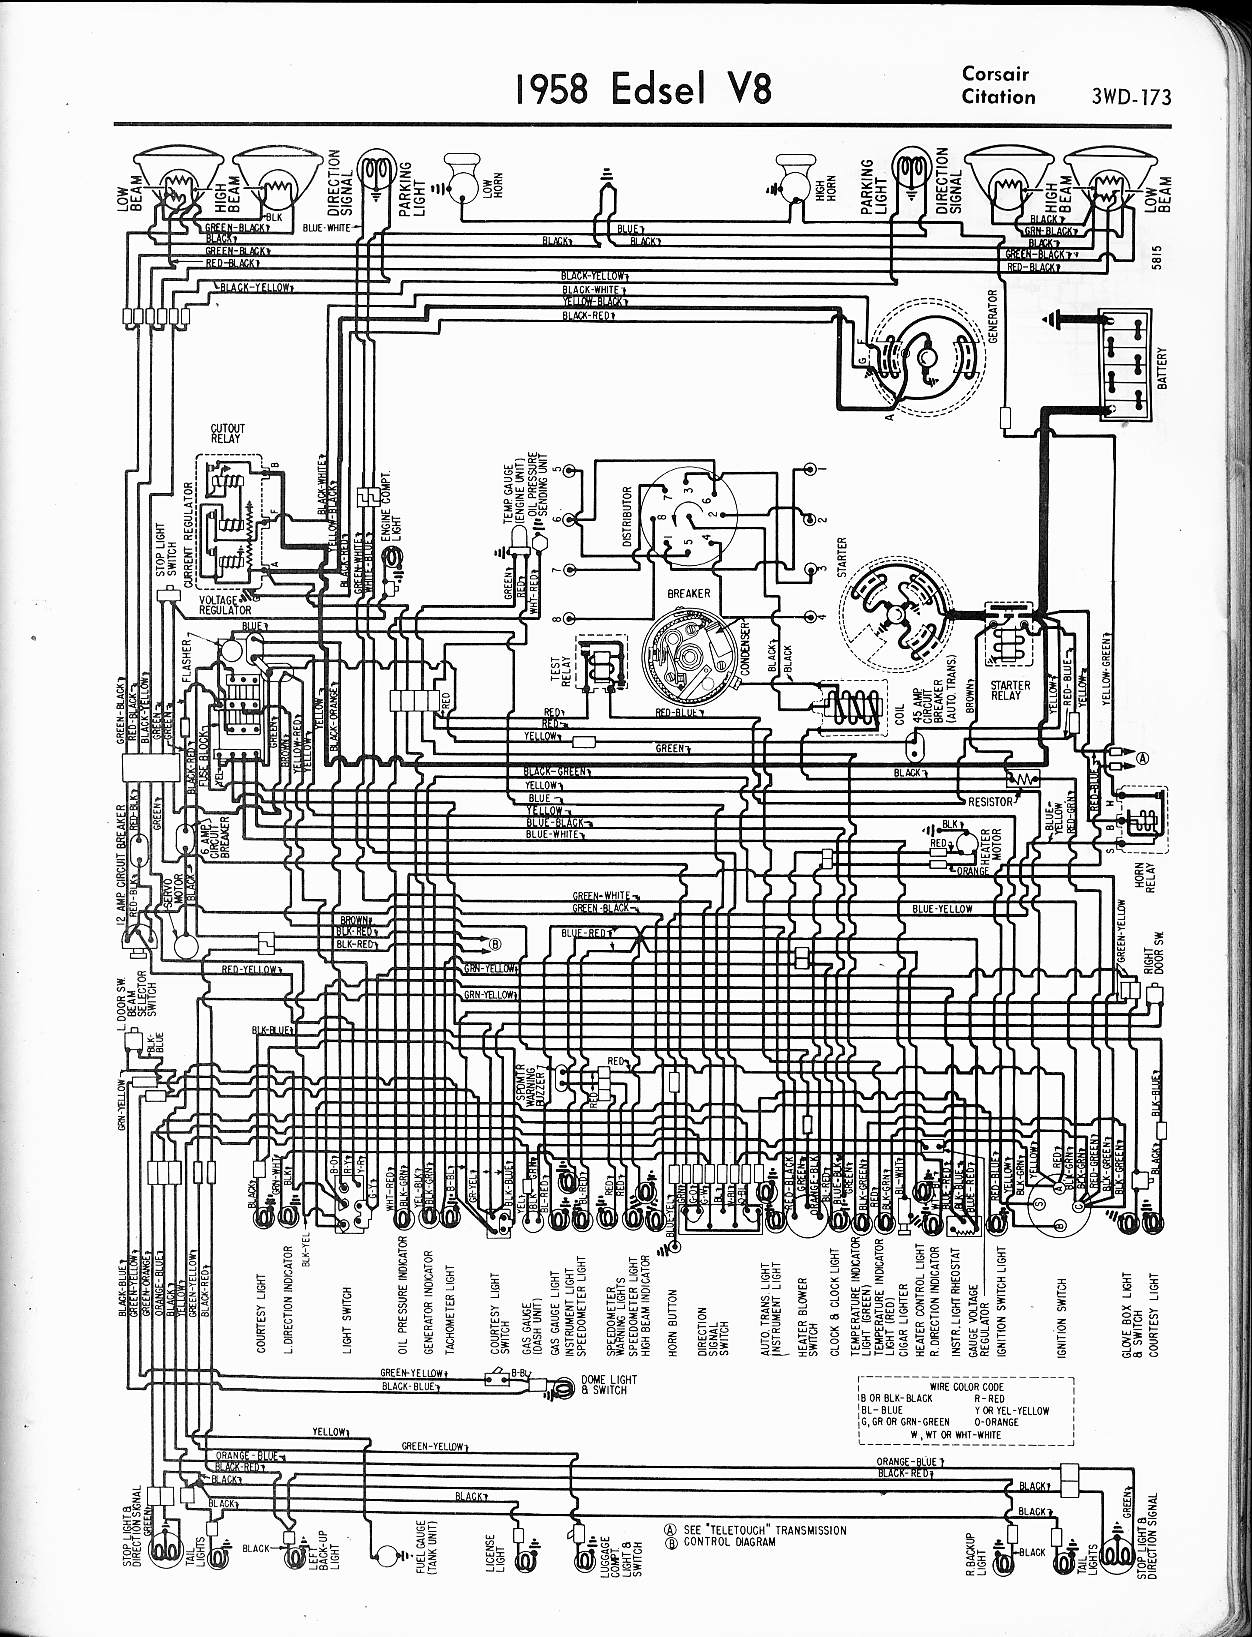 1953 ford car wiring diagram club car wiring diagram pictures #11